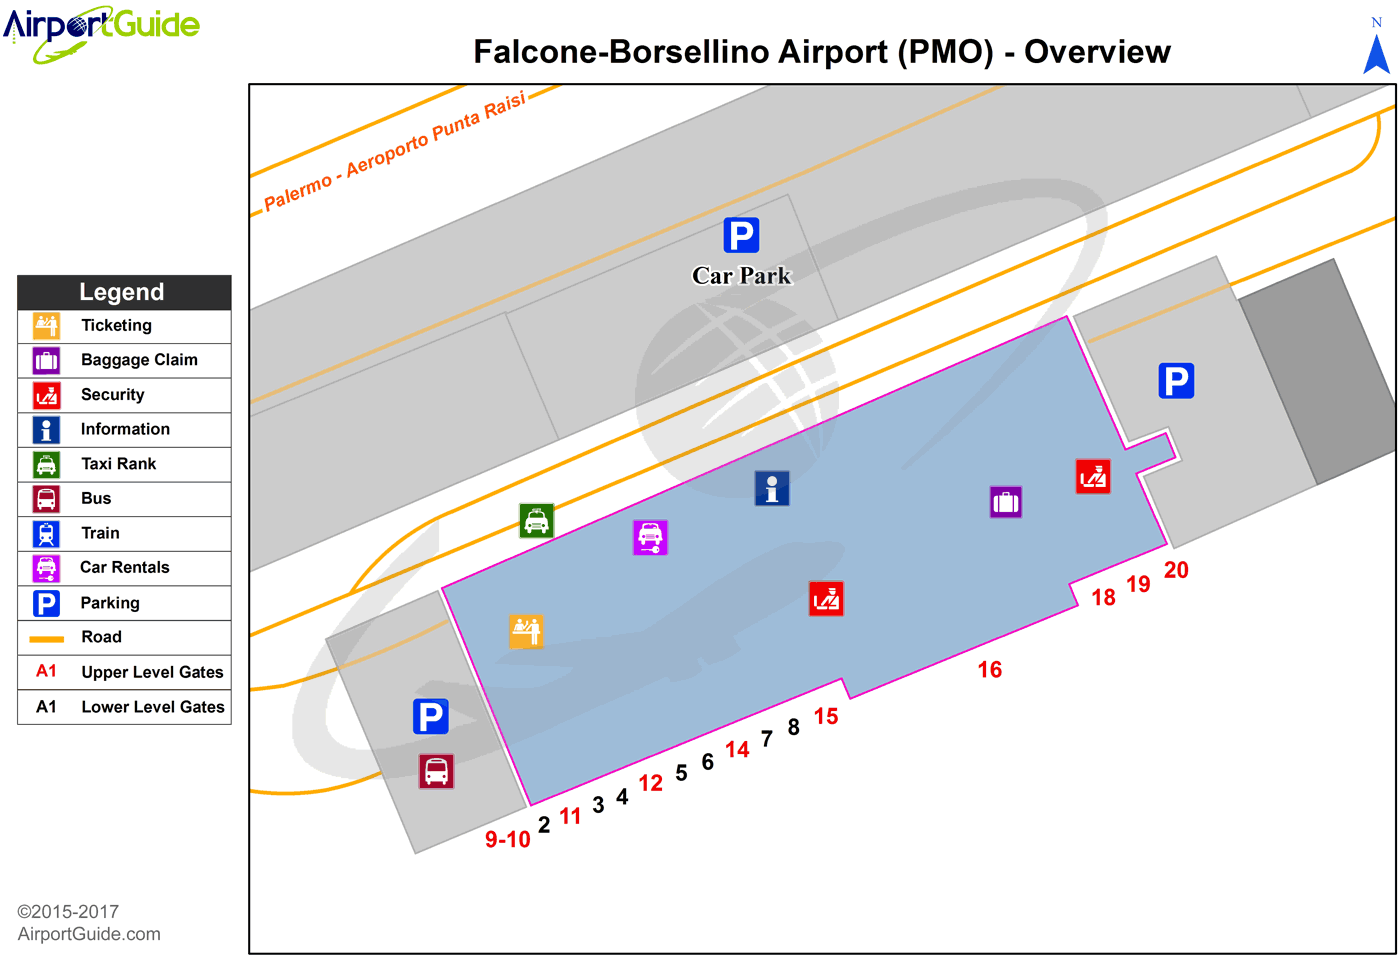 Palermo - Falcone–Borsellino (PMO) Airport Terminal Map - Overview